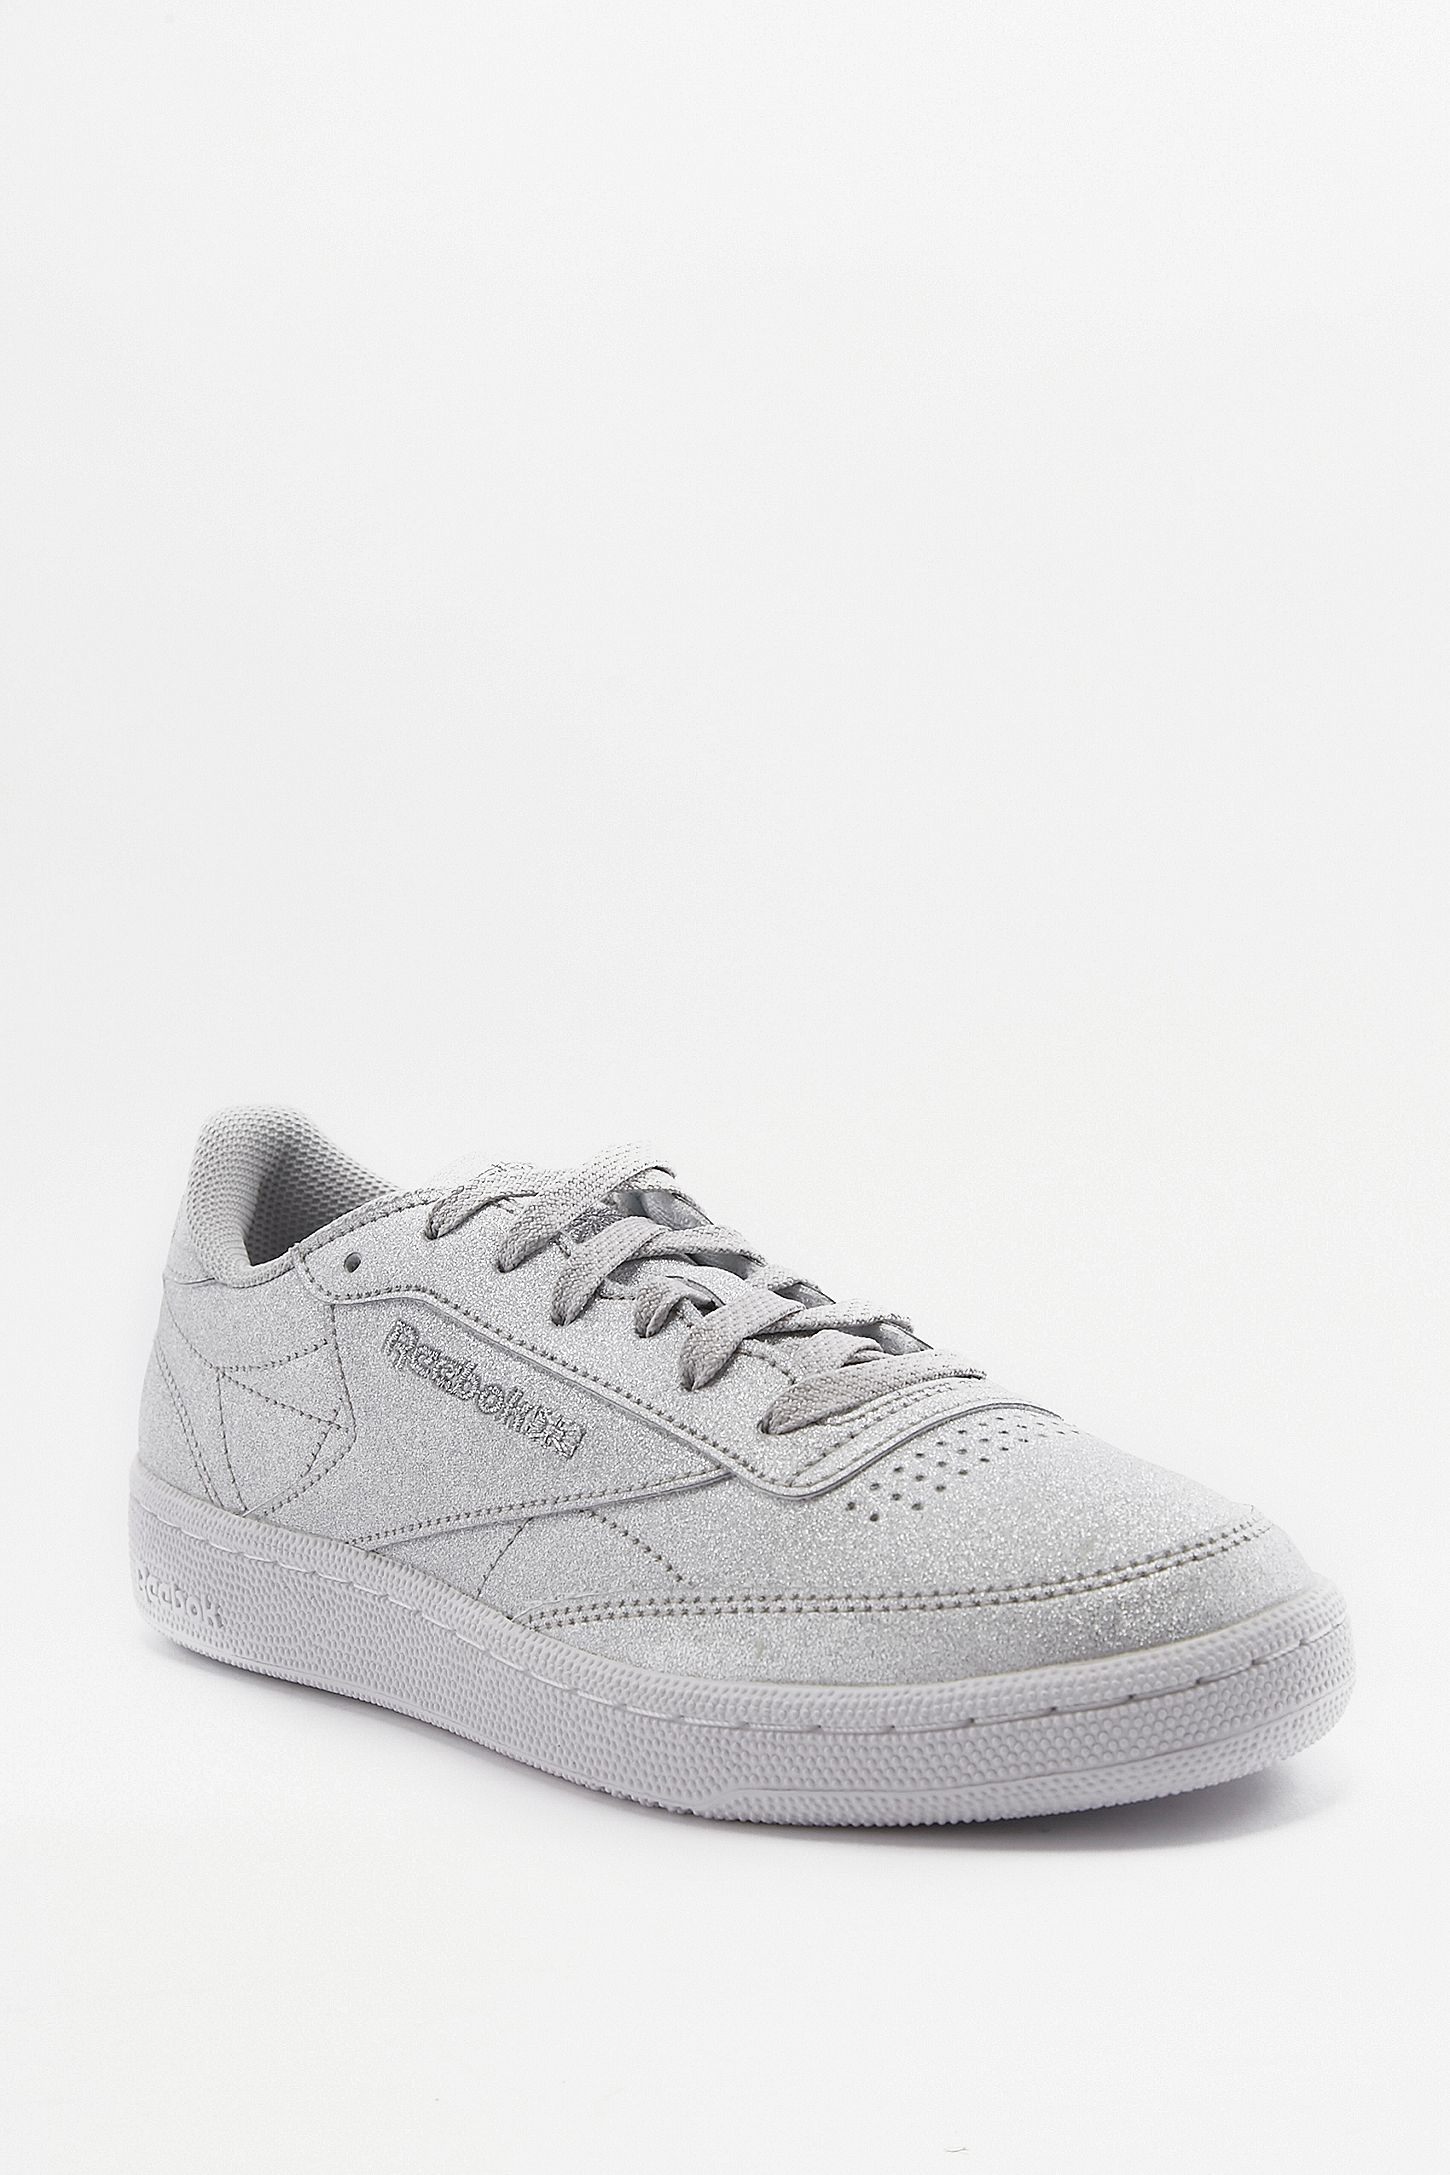 4730d75b12963 Reebok Club C 85 Silver Metallic Trainers. Click on image to zoom. Hover to  zoom. Double Tap to Zoom